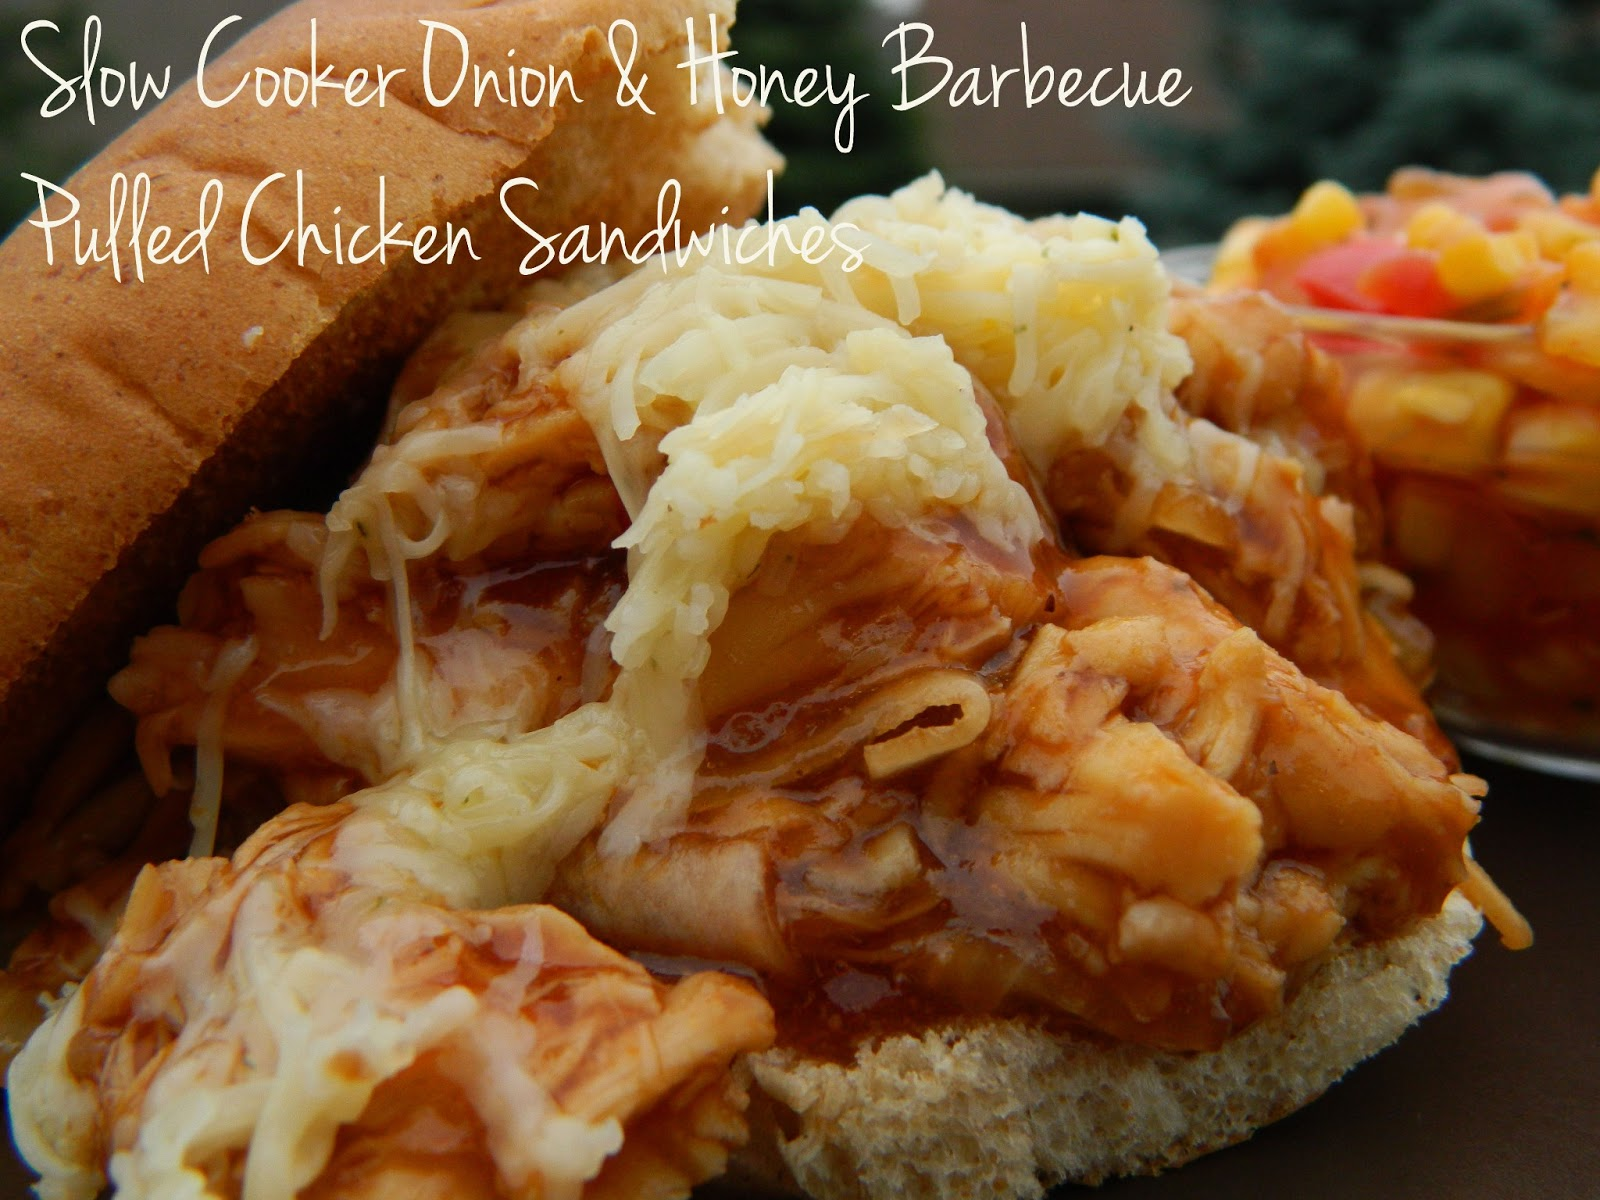 ... Things: Slow Cooker Onion & Honey Barbecue Pulled Chicken Sandwich